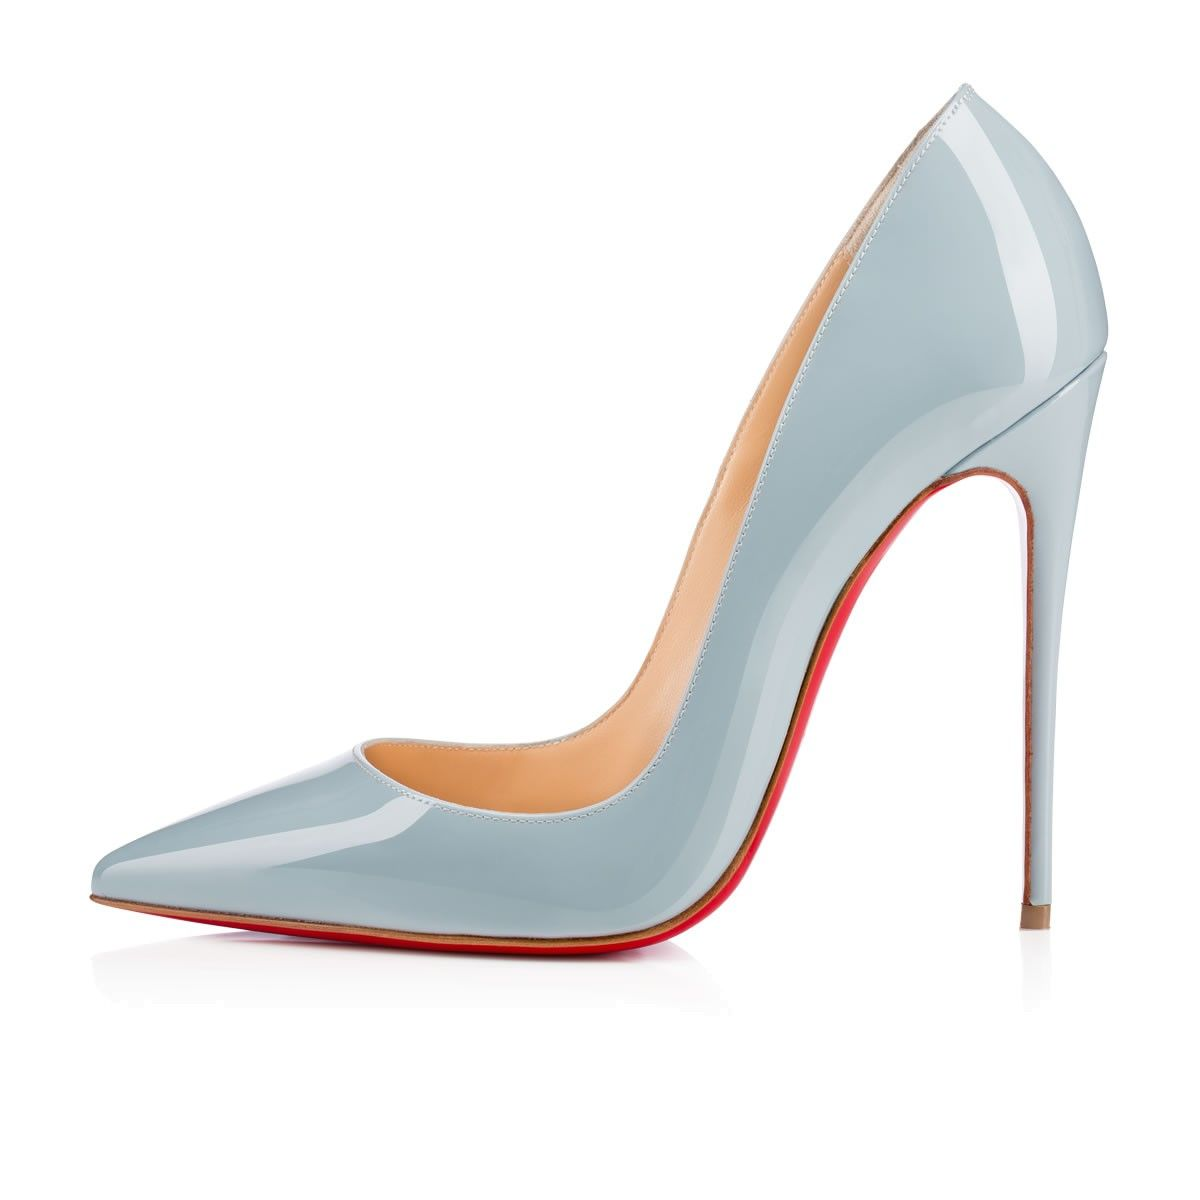 louboutin chaussures histoire